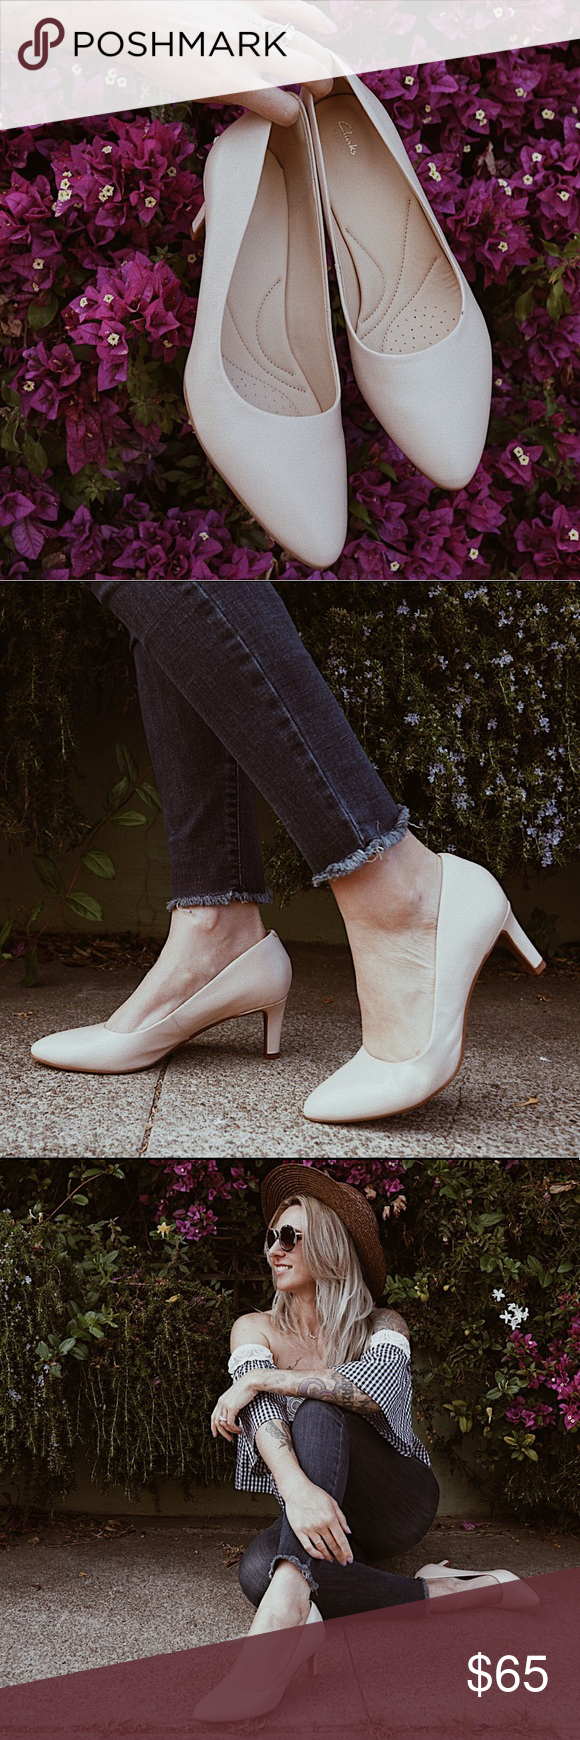 a0dc5bda1615 Clarks Calla Rose Pumps in Cream Add refined polish to dressy looks in the  chic leather and all-day comfort of these Calla Rose pumps from Clarks  Artisan.